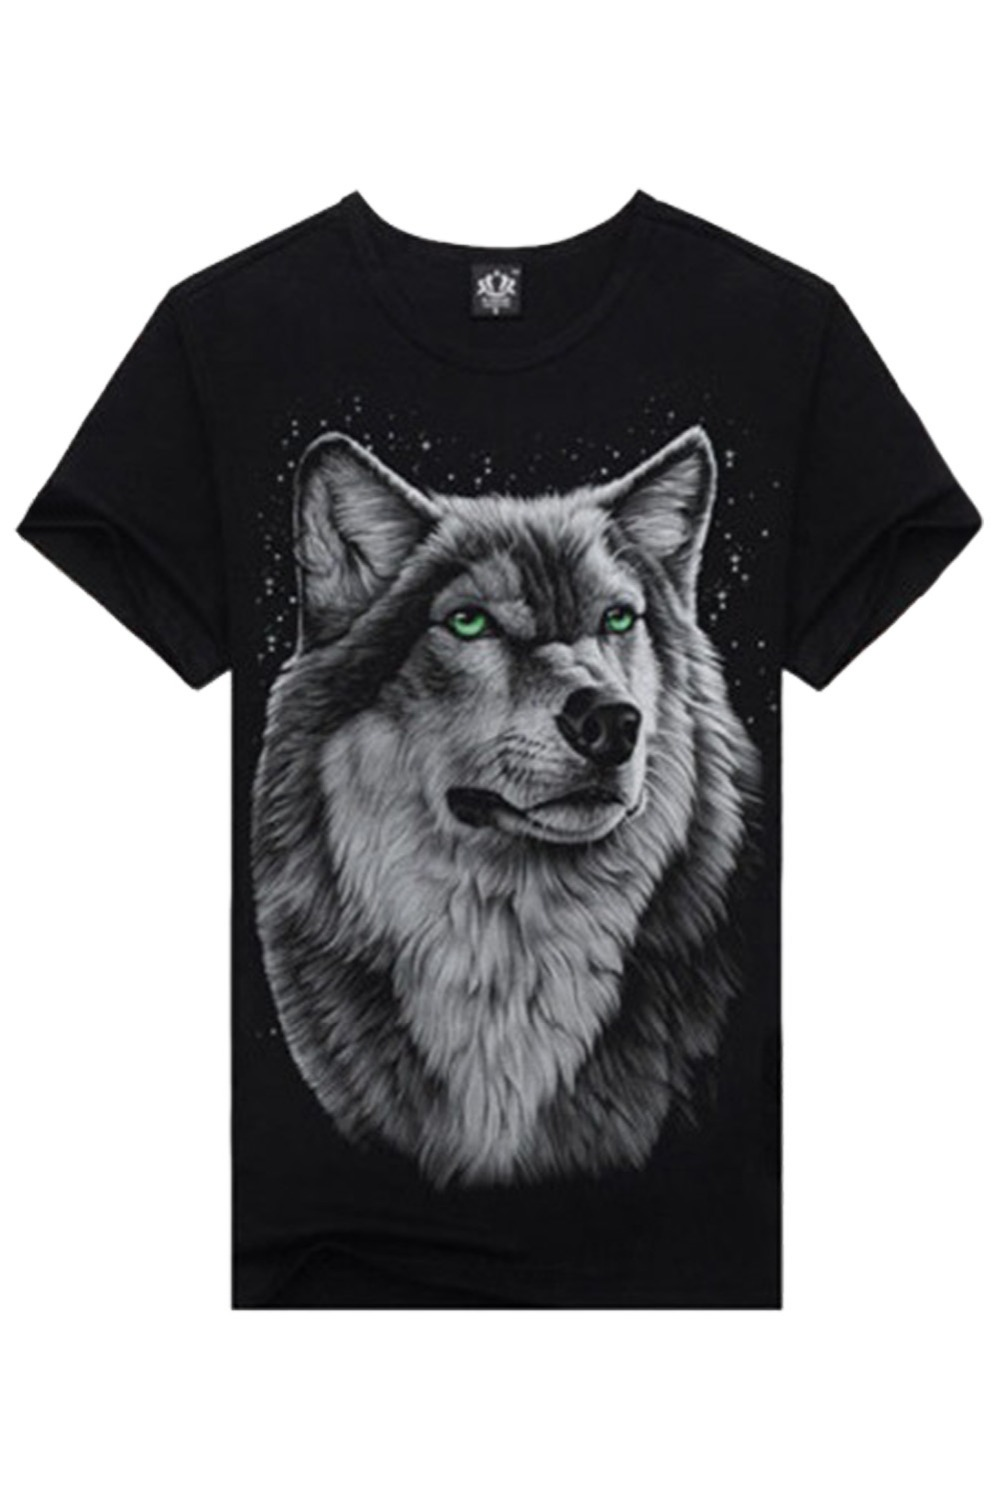 2018 Fashion 3D Digital Print T Shirt Men's Luminous Wolf Head Short Sleeve t-shirt for Men O Neck Europe America Cotton Tshirts